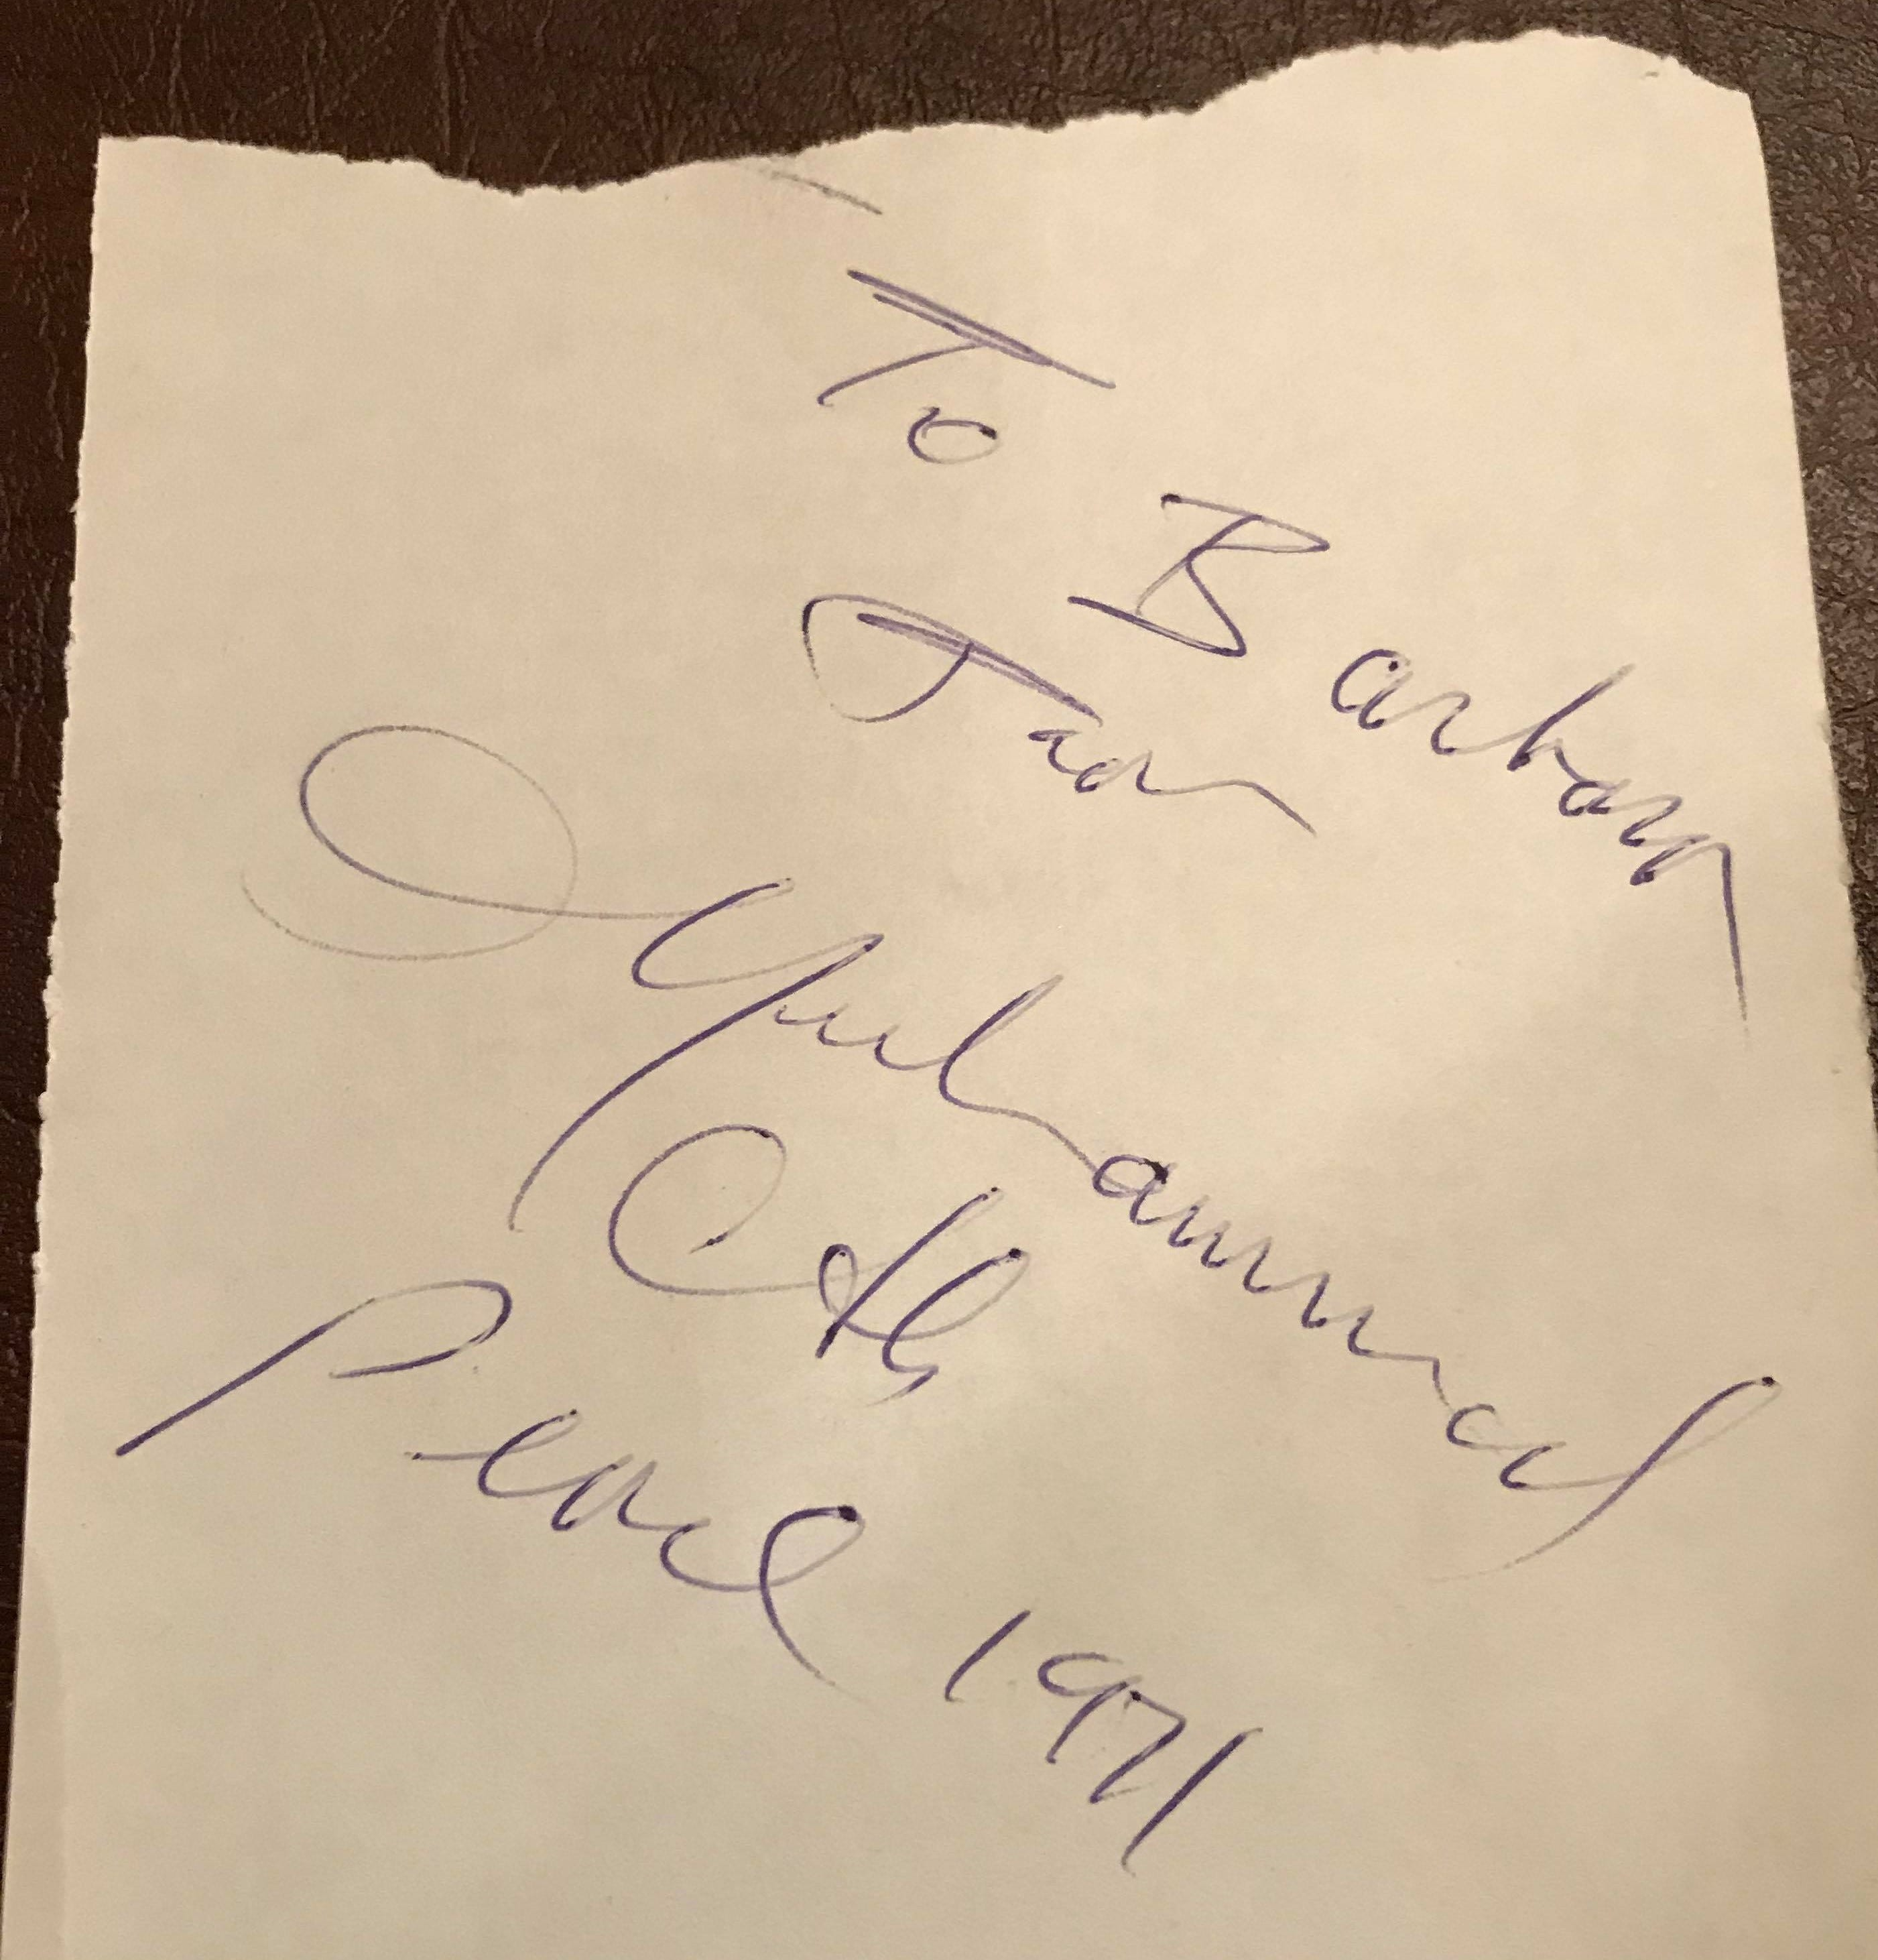 Barbara DeNardo was about 11 when she worked up the nerve to approach boxing great Muhammad Ali at a Cherry Hill park across the street from her house in 1971. Ali would run around the park, then shadow box near his car before he left. She got his autograph on a page of a book. She's kept it all these years.